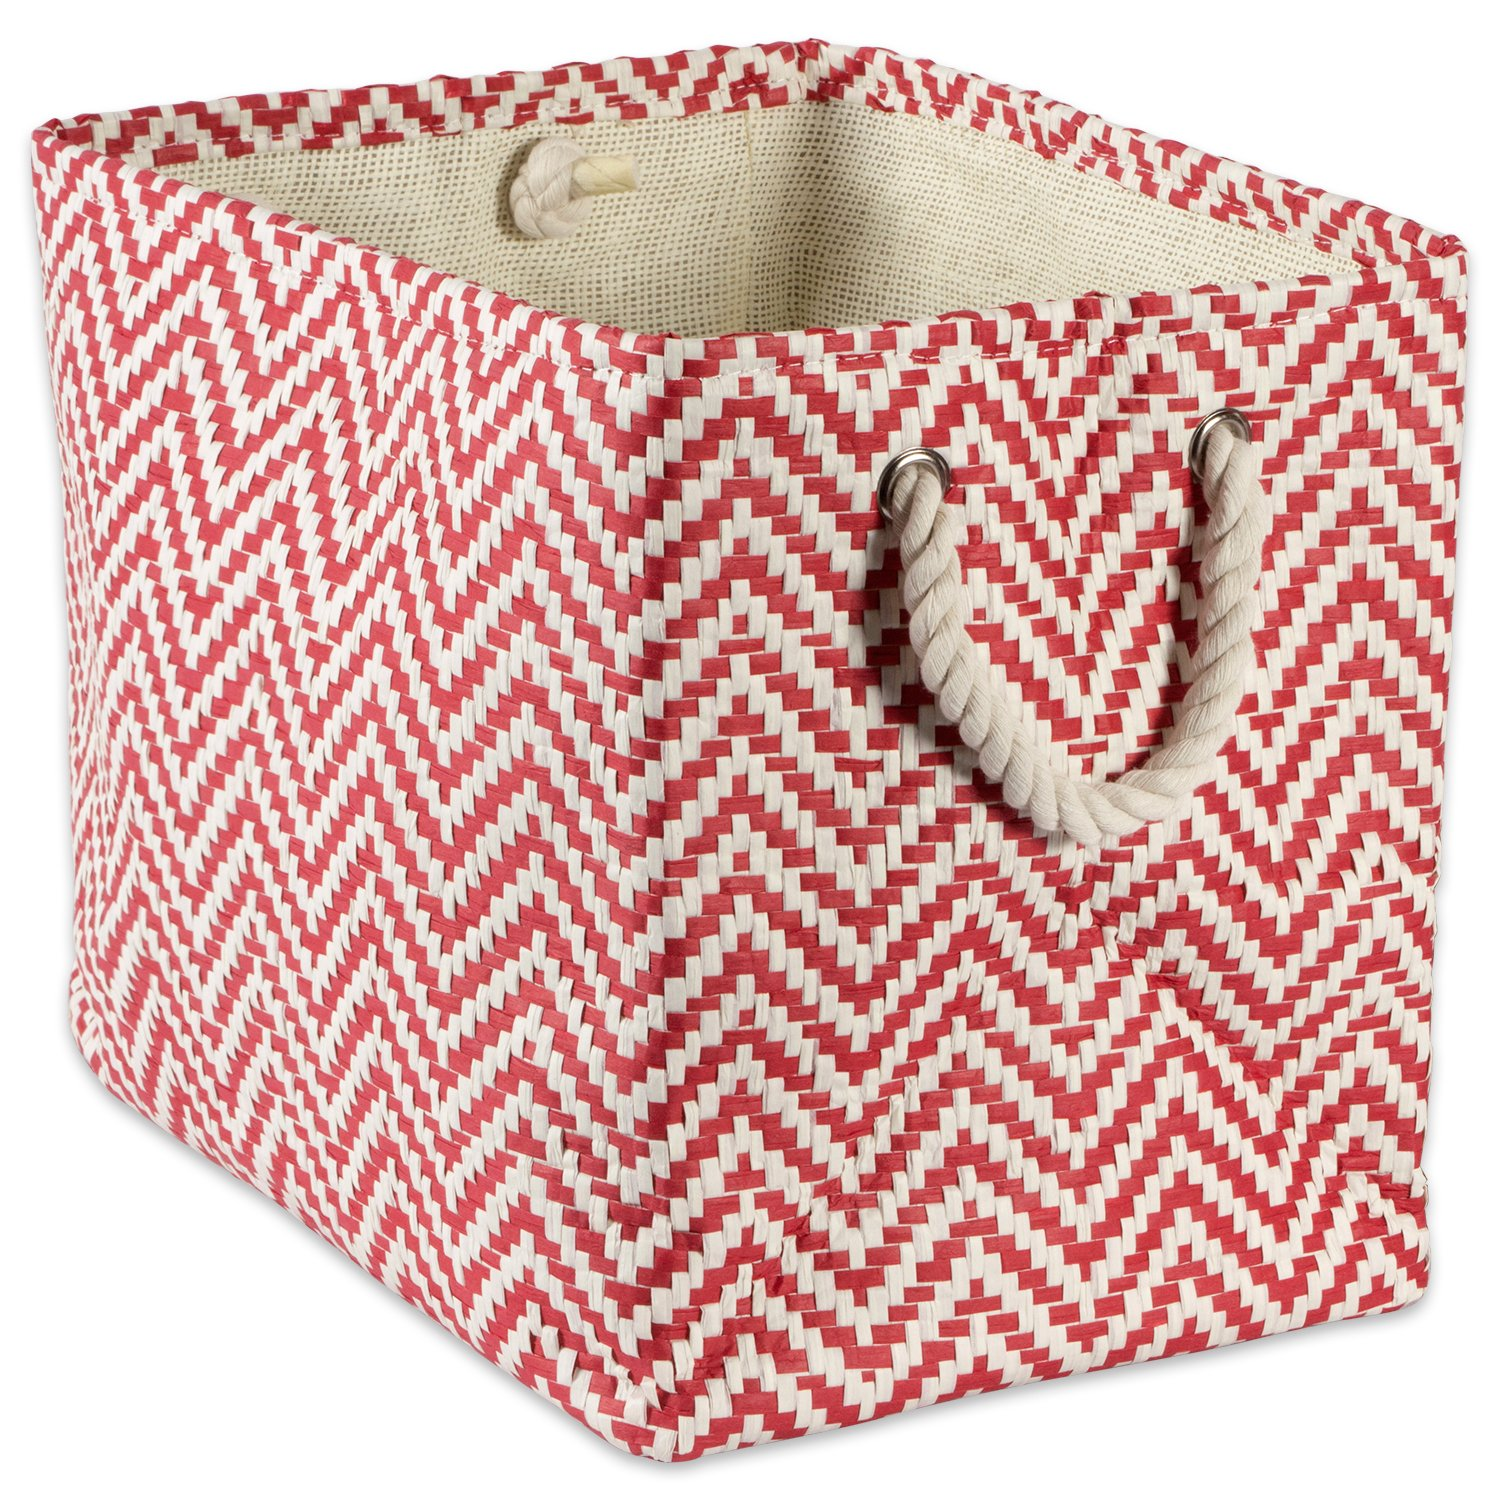 """DII Woven Paper Storage Basket or Bin, Collapsible & Convenient Home Organization Solution for Office, Bedroom, Closet, Toys, & Laundry (Small - 11x10x9""""), Rust Chevron"""